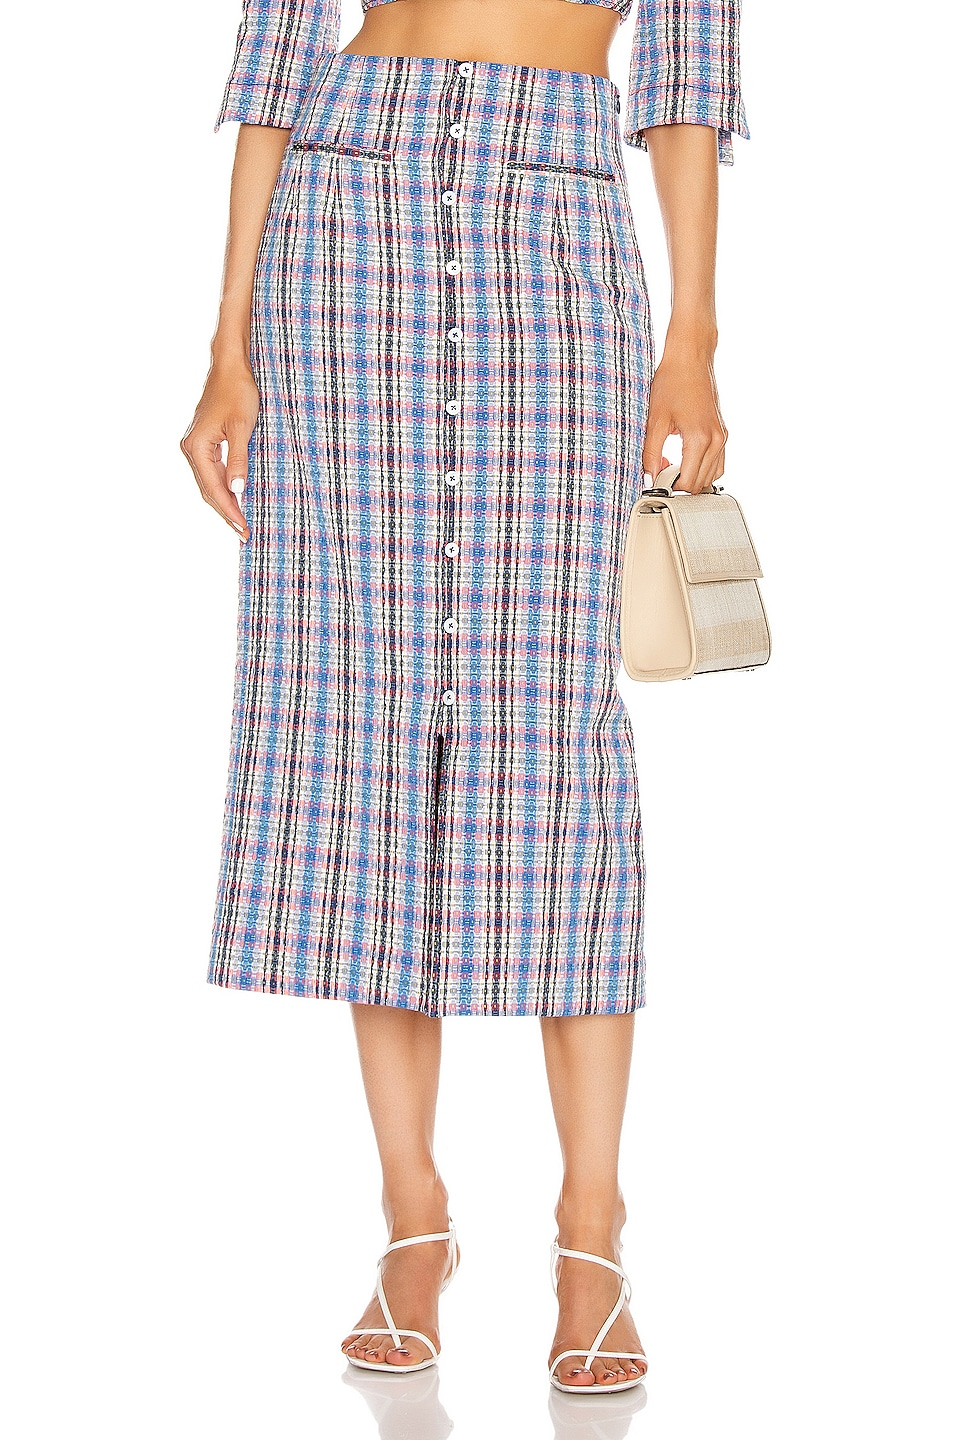 Image 1 of Rosie Assoulin Button Down Pencil Skirt in Blue Plaid